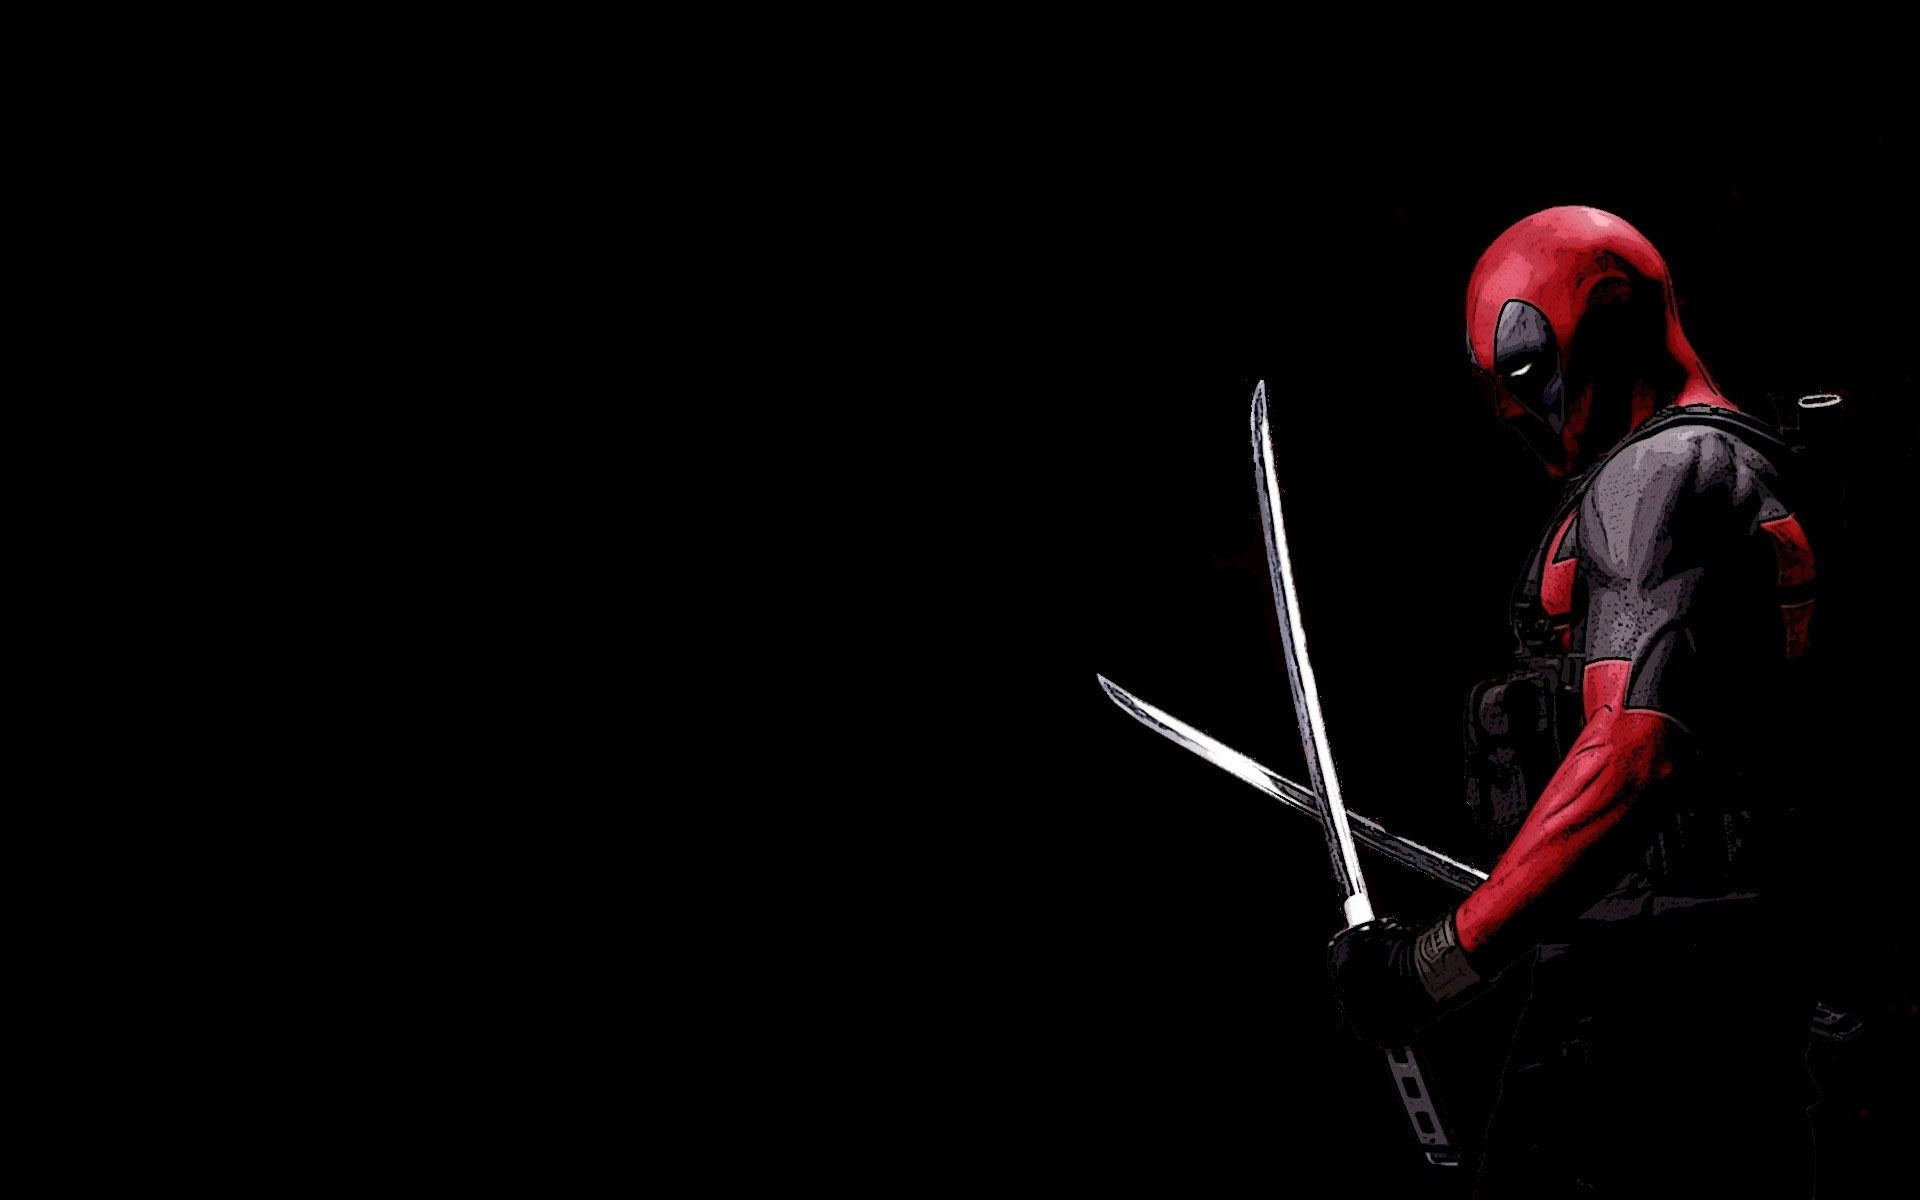 deadpool wallpaper iphone x